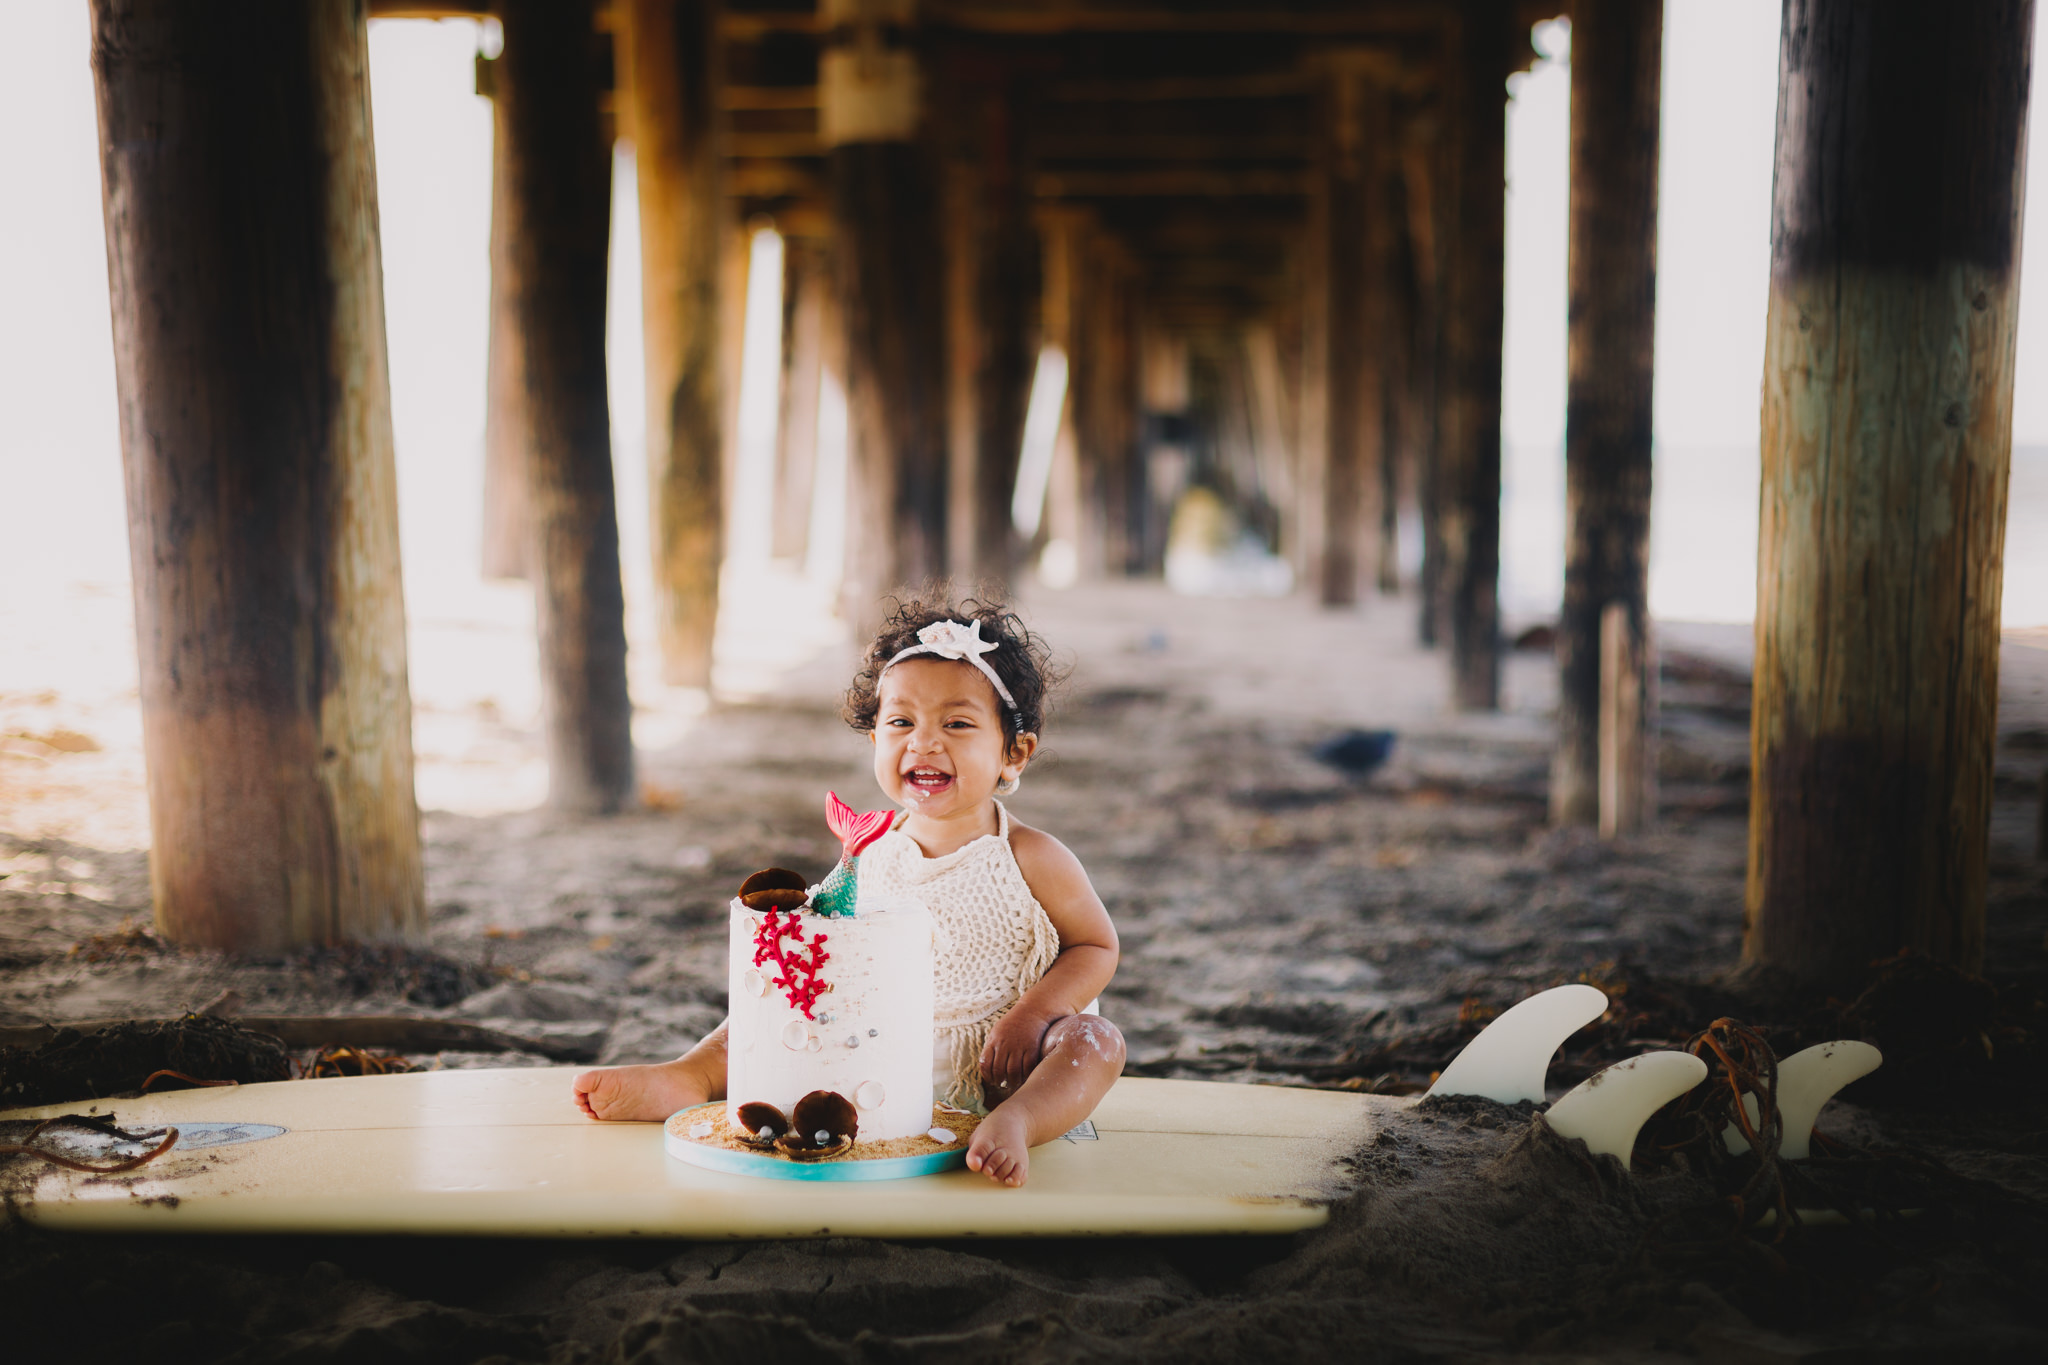 Archer Inspired Photography Cake Smash First Birthday Lifestyle Natural Light Documentary Family Photographer-24.jpg